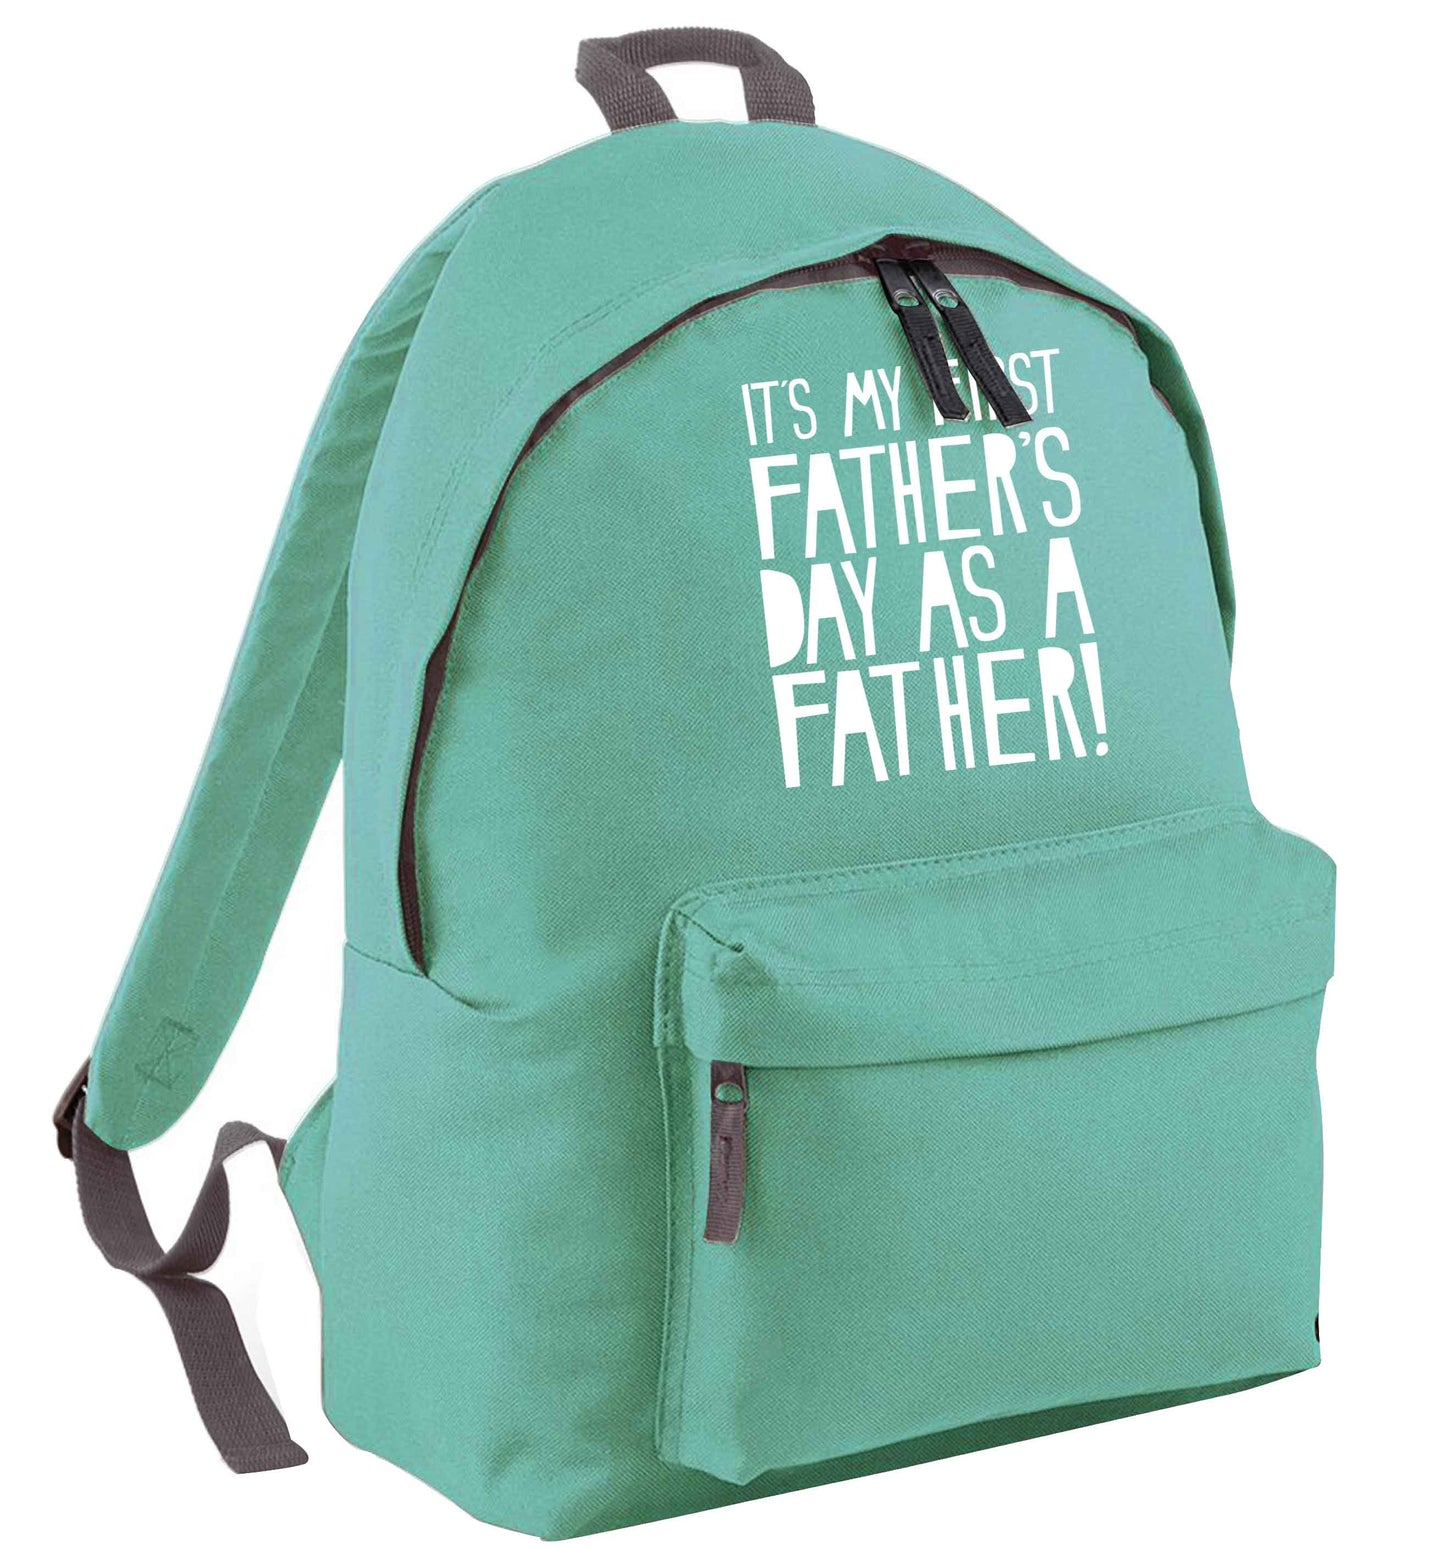 It's my first father's day as a father! mint adults backpack